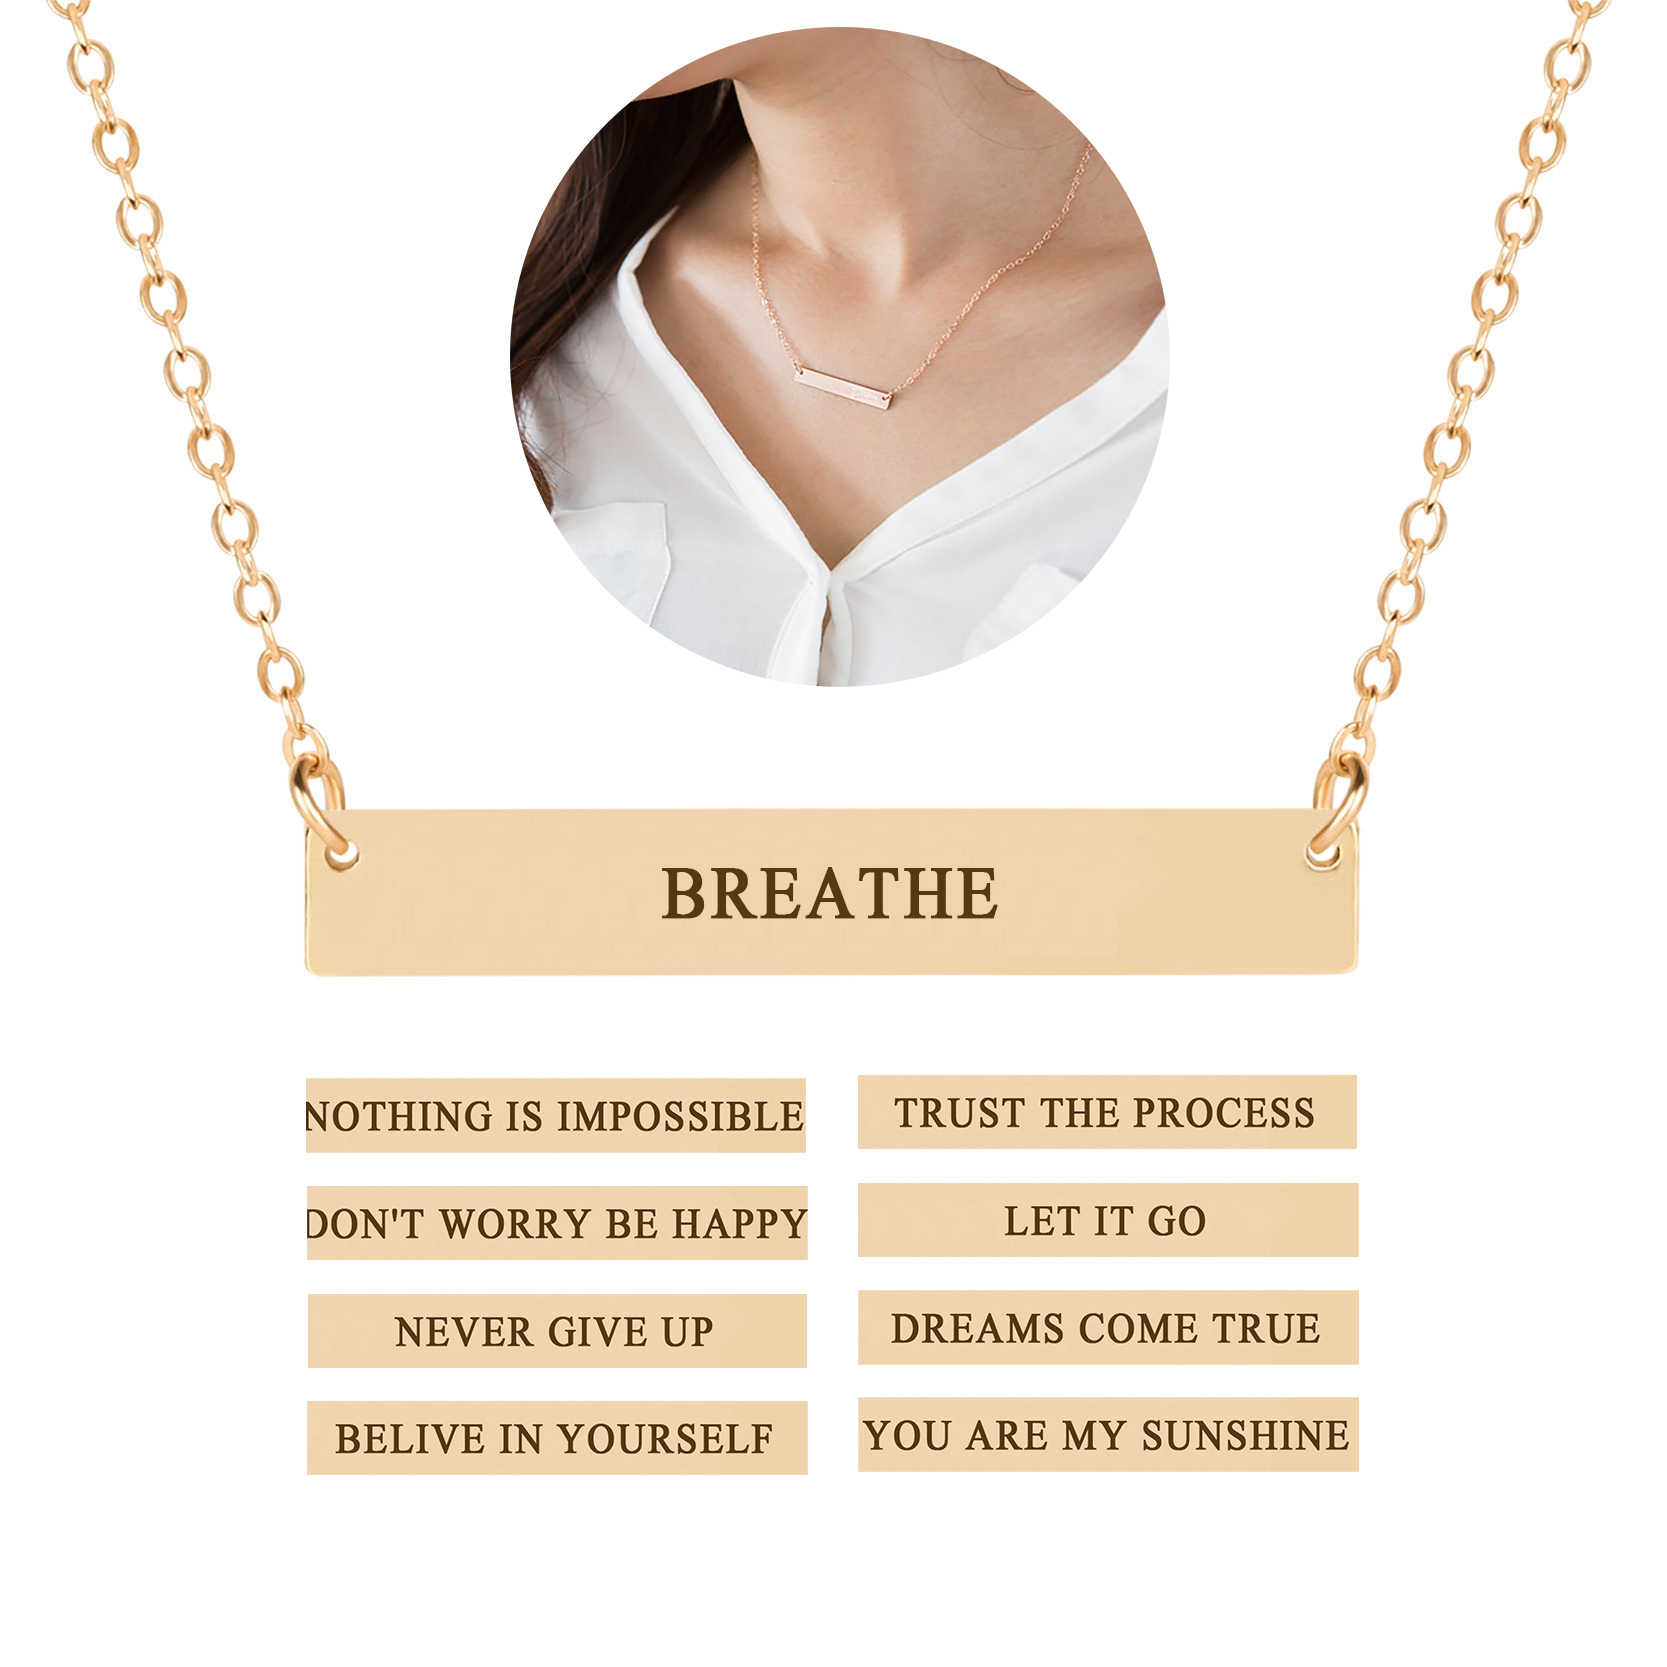 cafb097af Fashion Engraved Letter Necklace Pendant Clavicle Chain Charm Necklace  Inspirational Quote Men Women Jewelry Gift